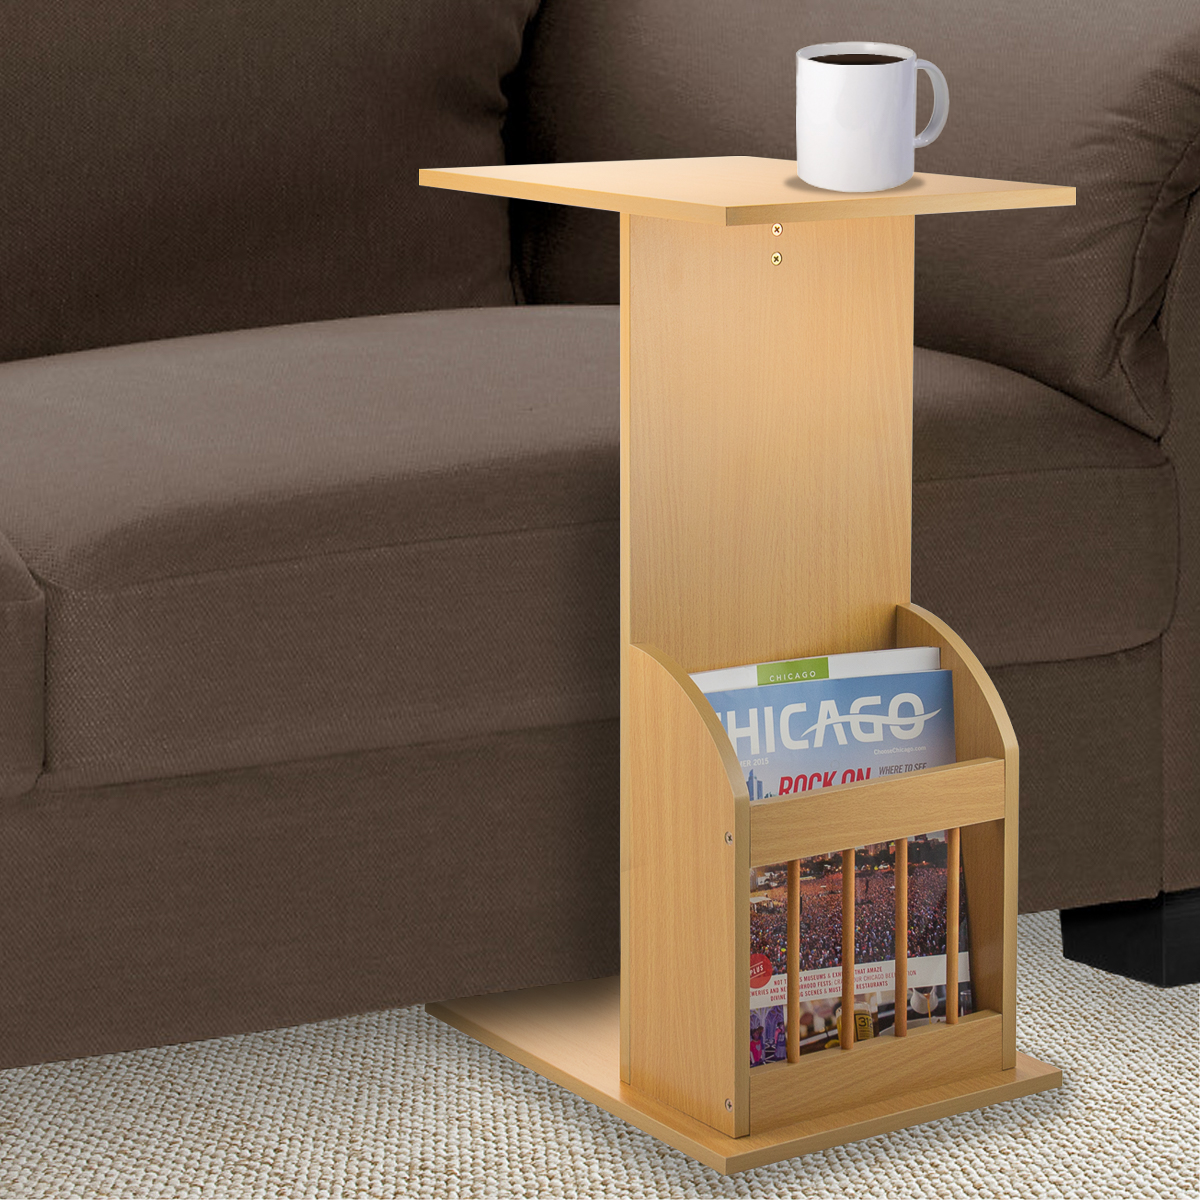 C Shape Light Wood Sofa End Side Table Magazine Living Room Furniture Couch Home Snack Tray